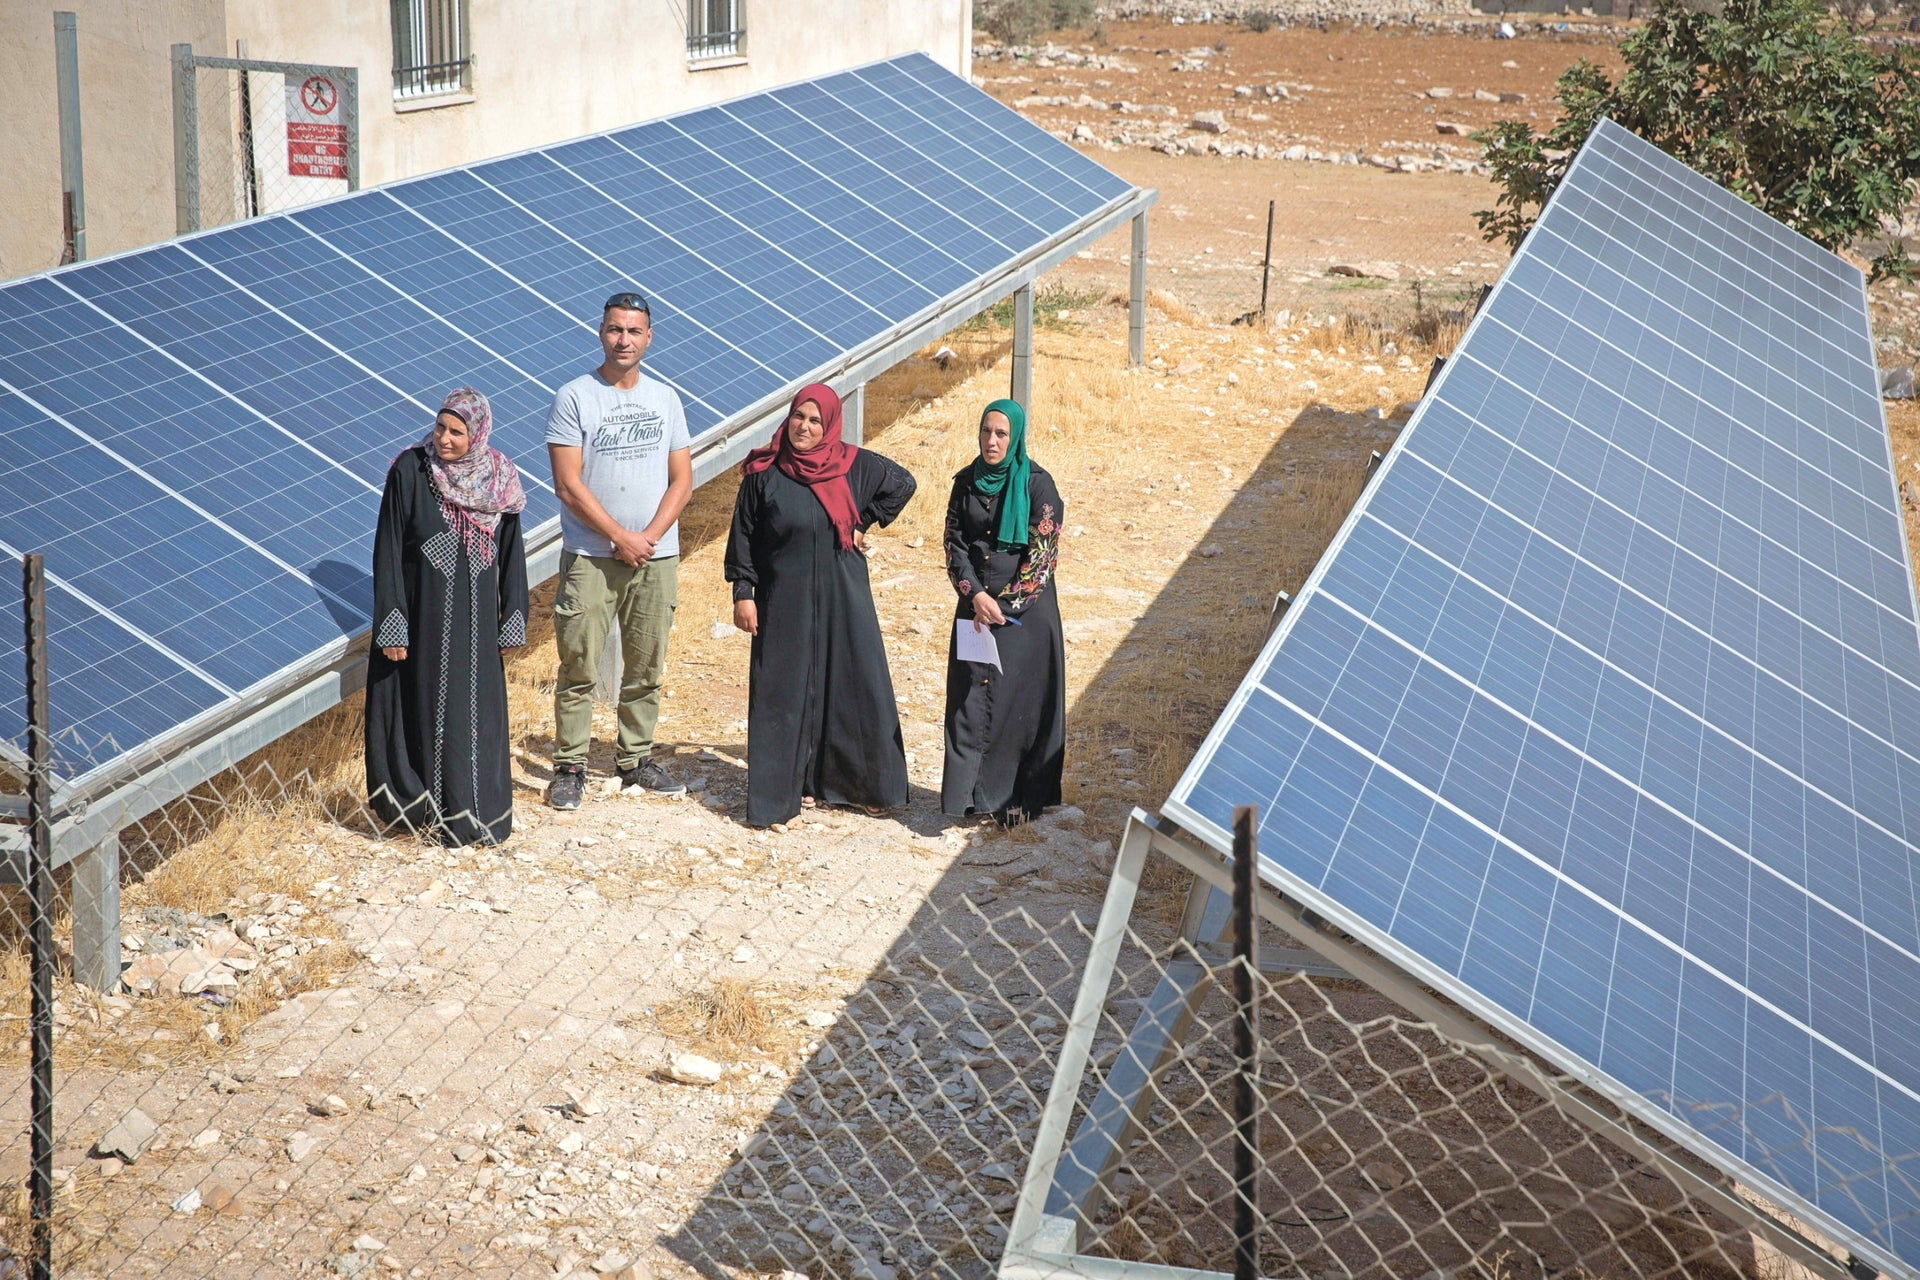 Electricity returns to Palestinian village Jubbet Adh-Dhib, southeast of Bethlehem, in the West Bank, eight months after Israel confiscated its hybrid (solar and diesel) electrical system